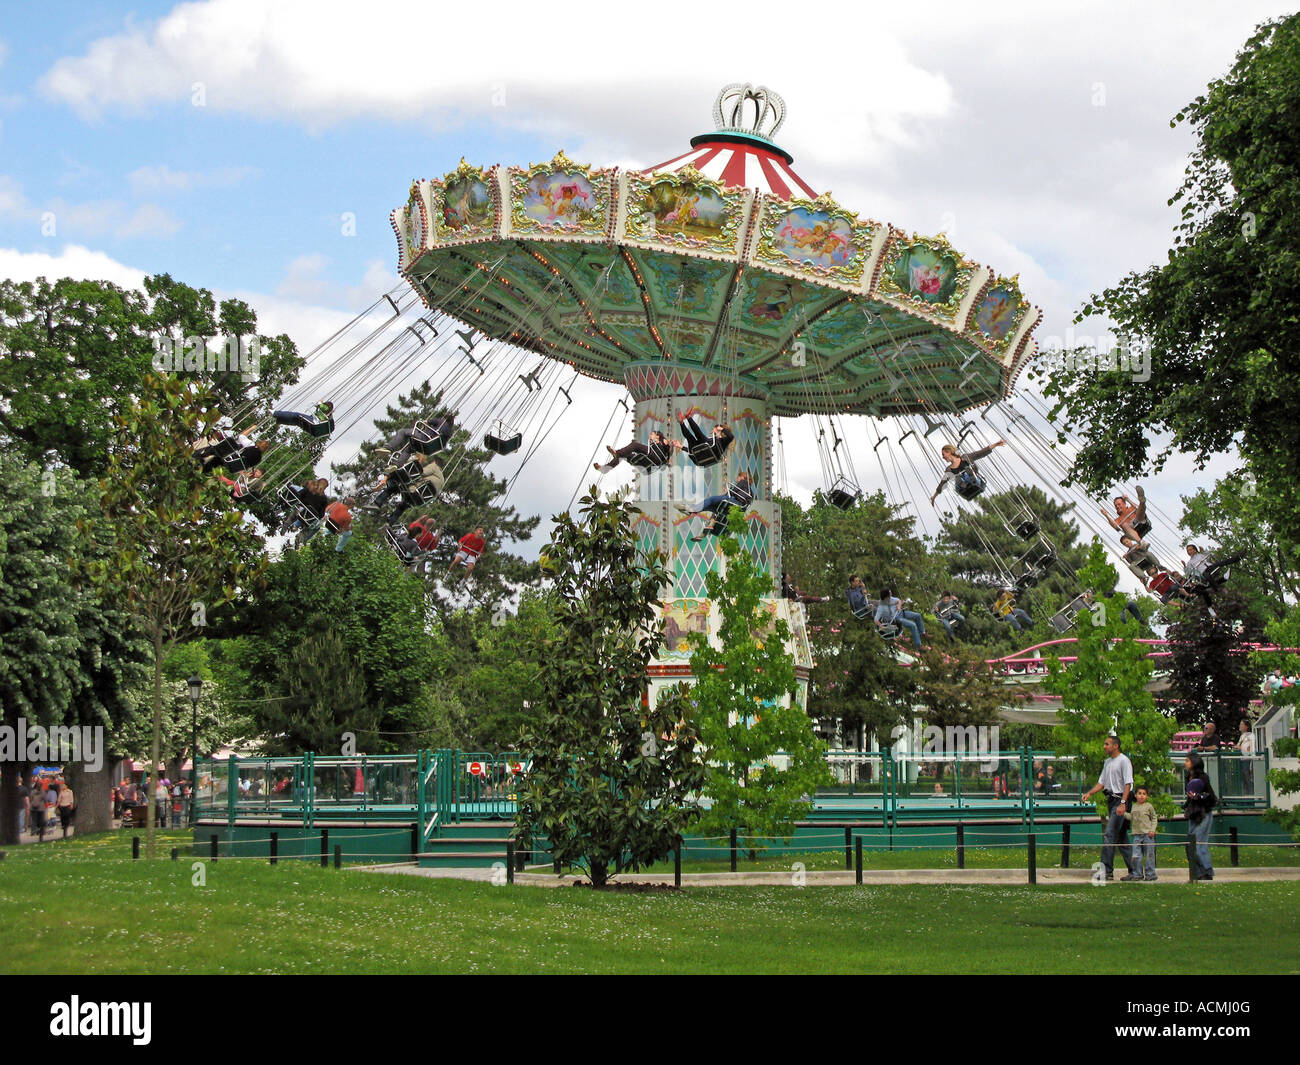 roundabout in le jardin d acclimatation paris france stock photo royalty free image 13189791